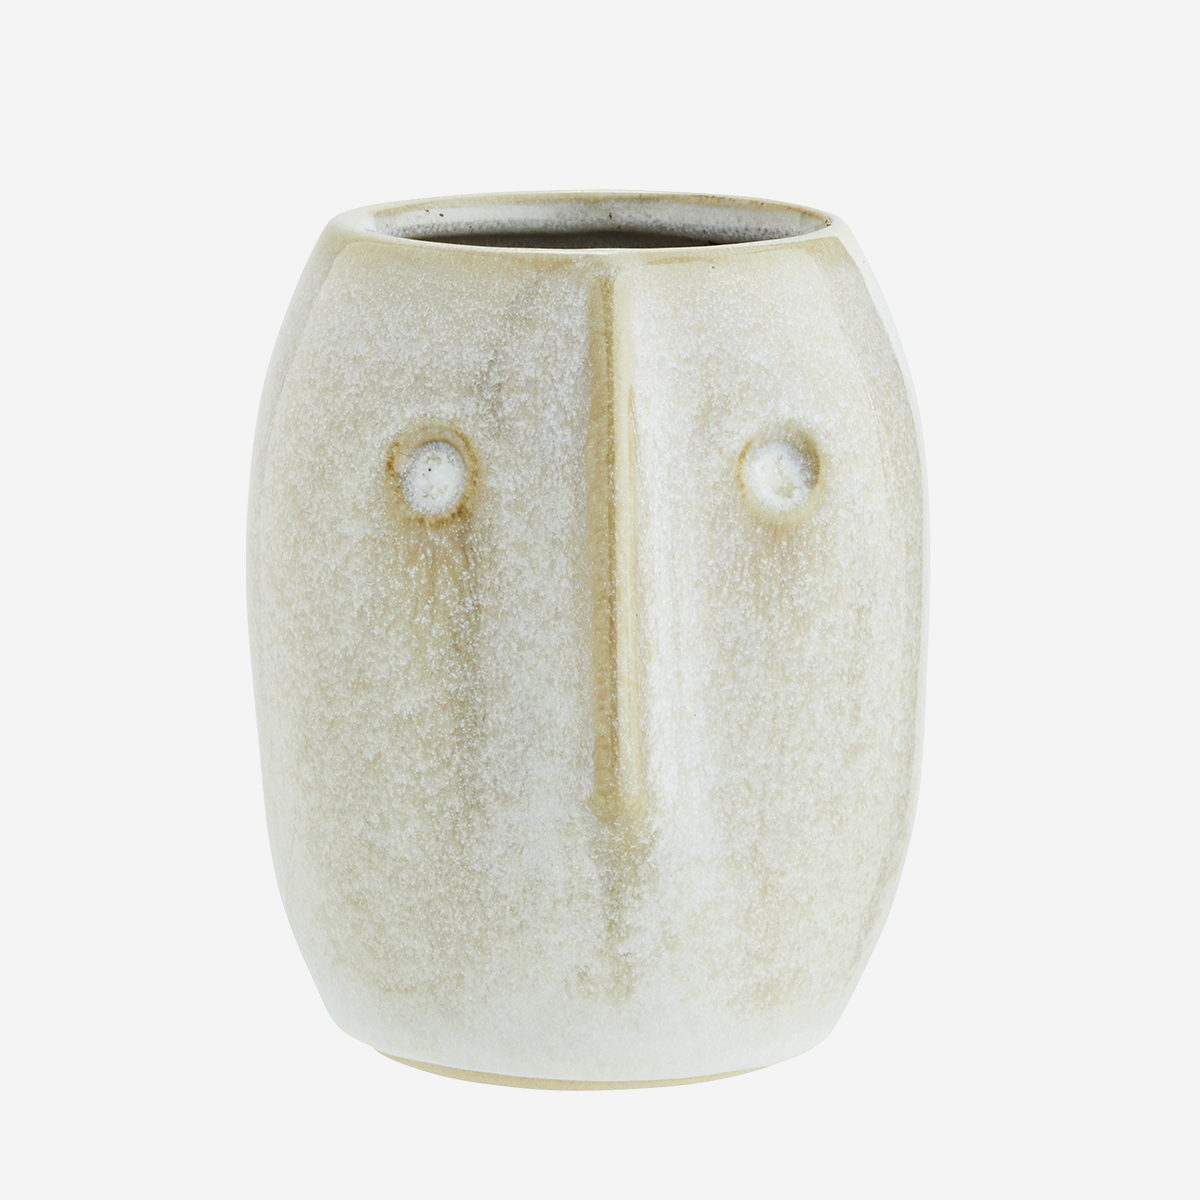 Small Simple Face Vase